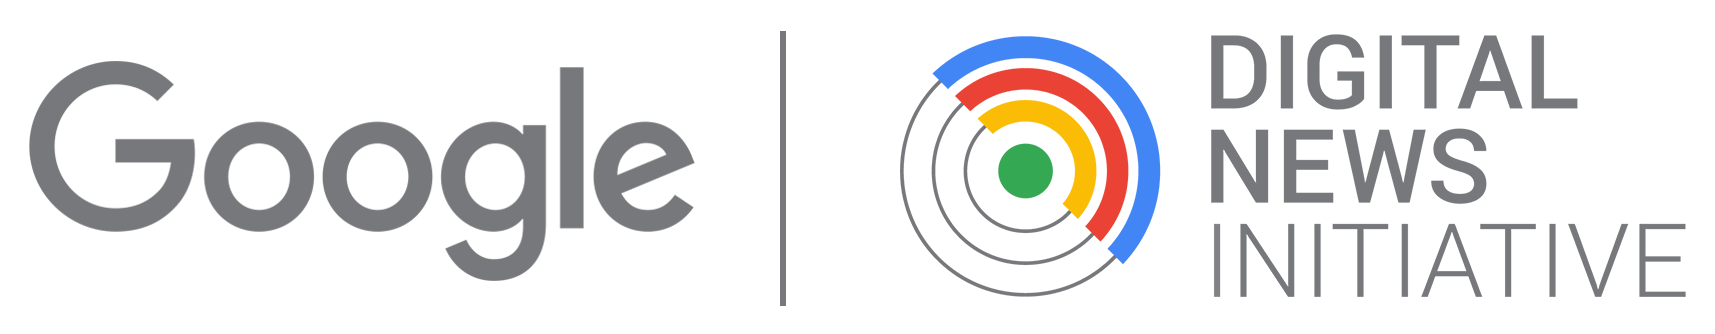 Google Digital News Initiative logo